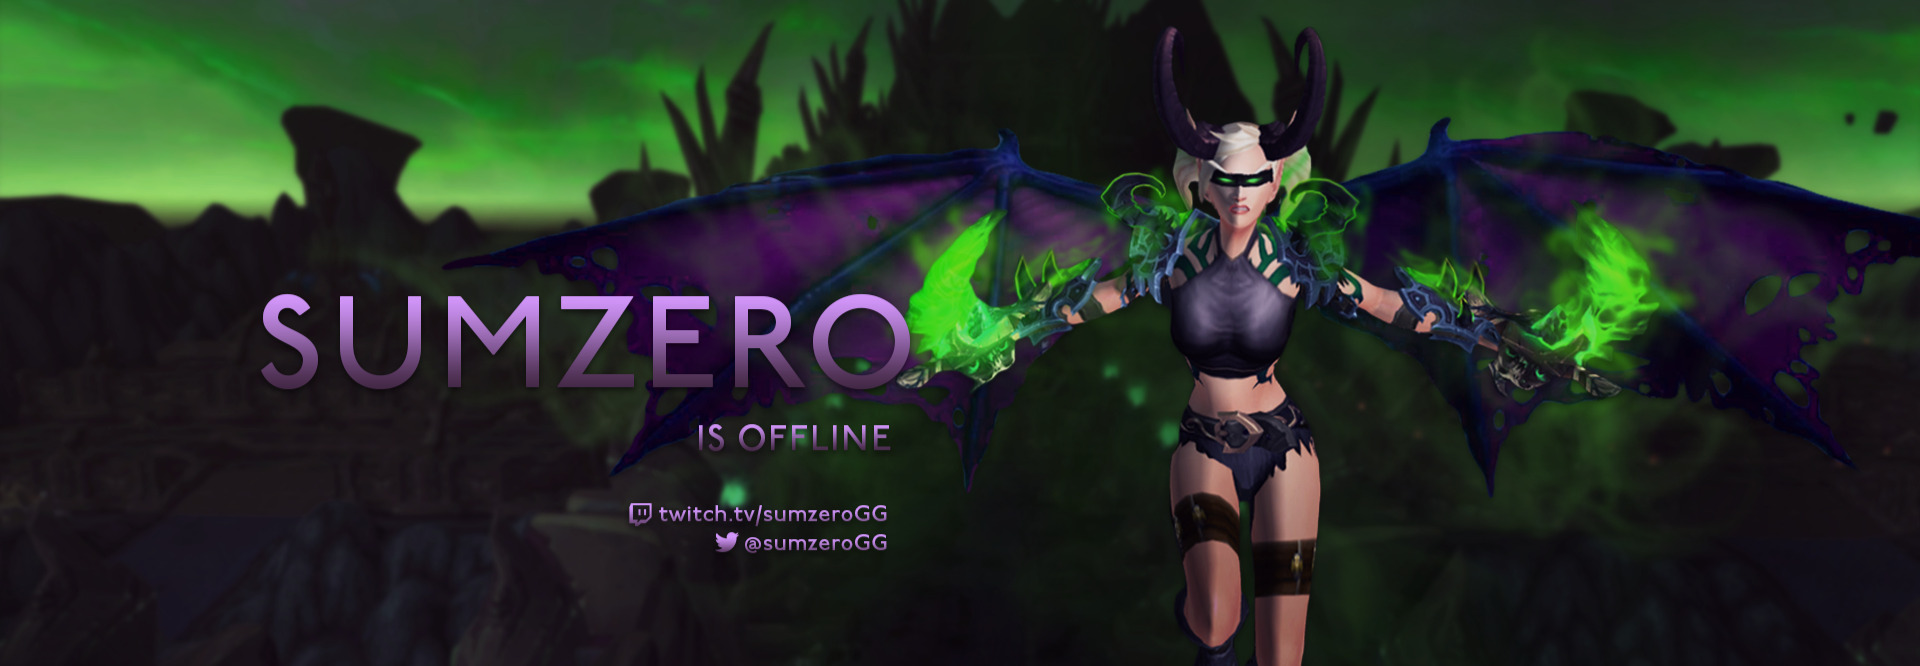 SumZero%20Twitch%20Offline%20Screen_edit